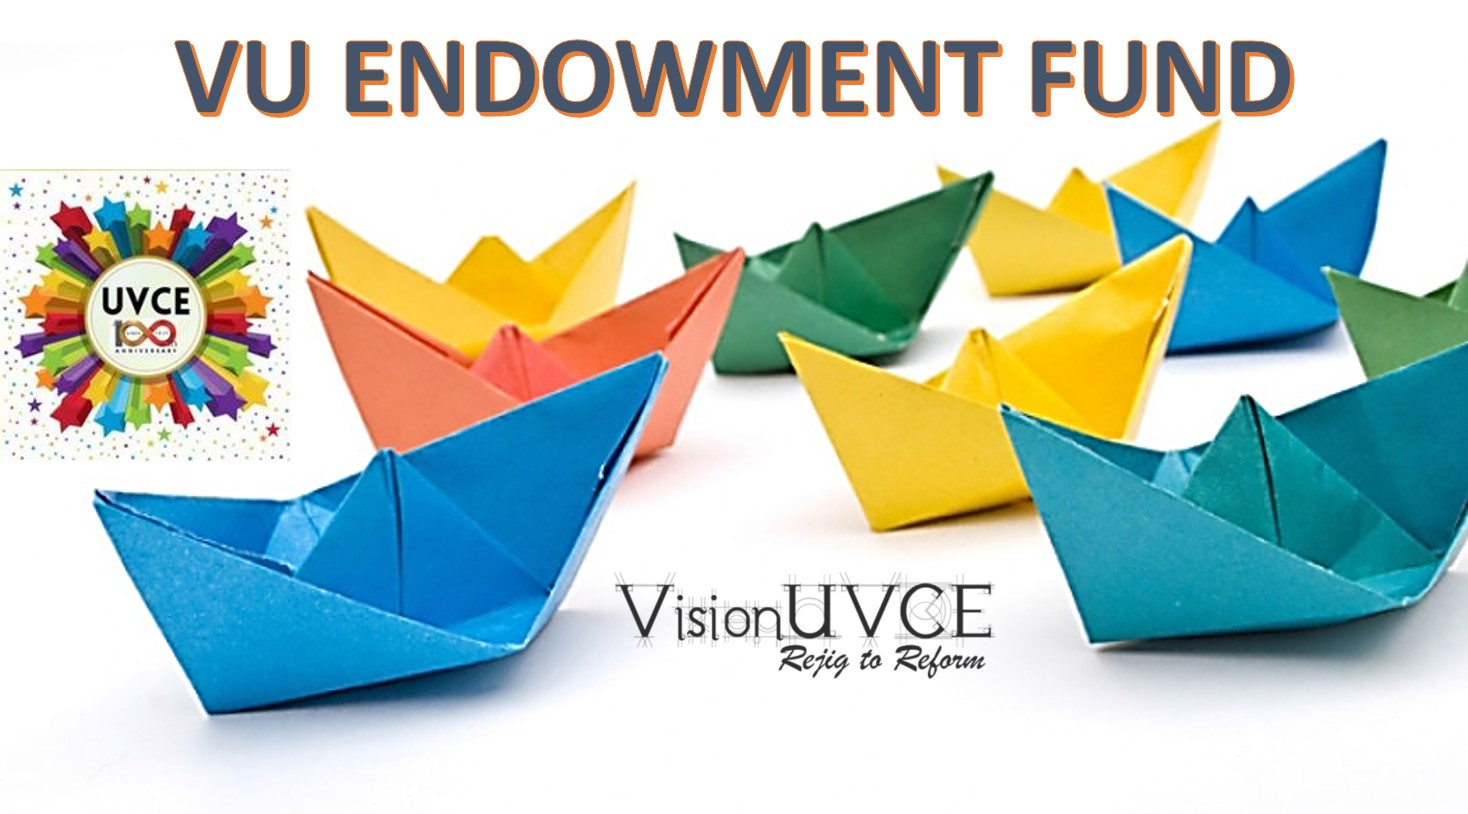 VisionUVCE Endowment Initiative